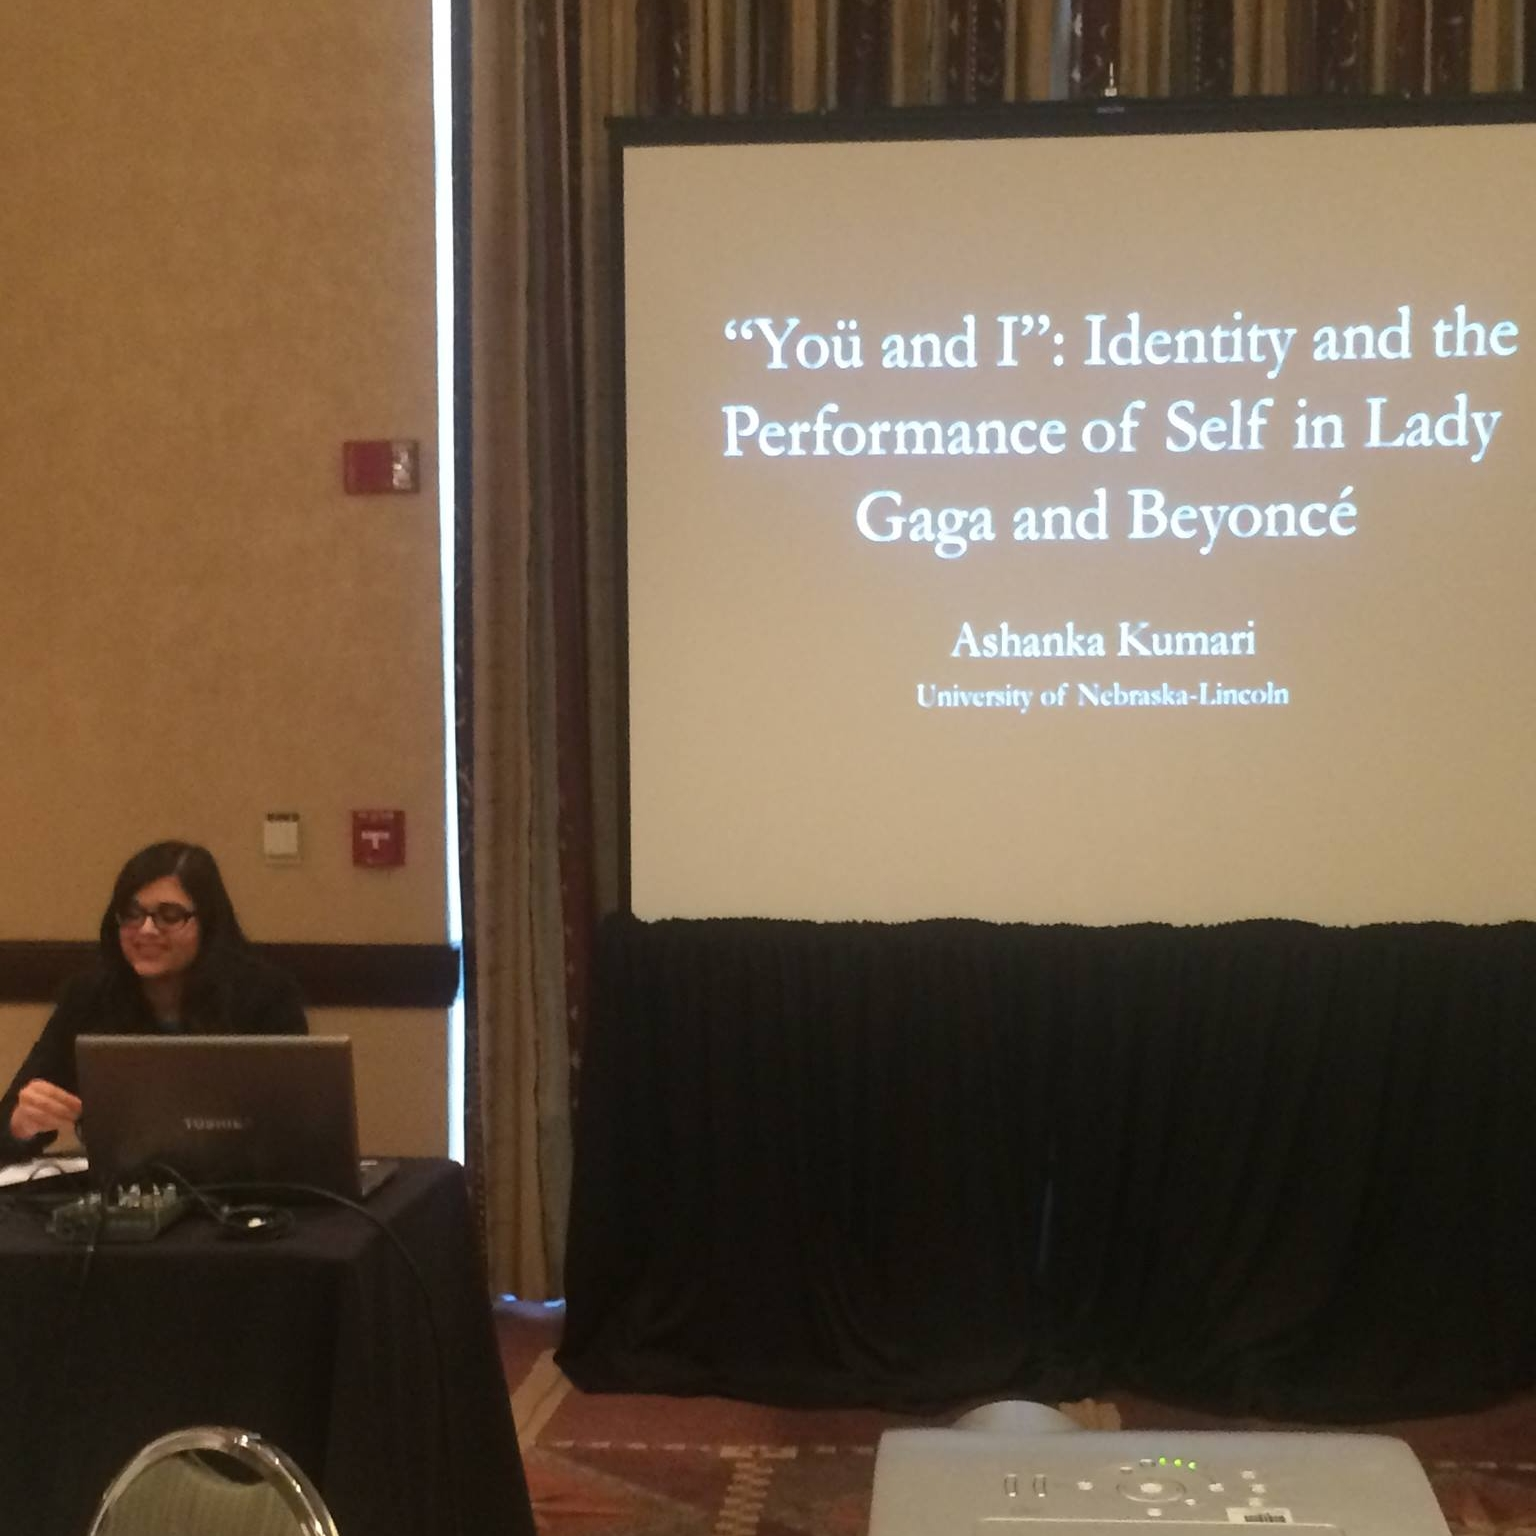 """Southwest Popular/American Culture Studies Conference - Pictured here: Ashanka Kumari (seated) presents a paper on identity in Lady Gaga and Beyoncé's performances at the 2015 Southwest Popular/American Culture Studies Conference.Kumari, Ashanka. """"'Yoü and I': Identity and the Performance of Self in Lady Gaga and Beyoncé."""" Paper. Southwest Popular/American Culture Studies Conference. Albuquerque, New Mexico. February 2015."""